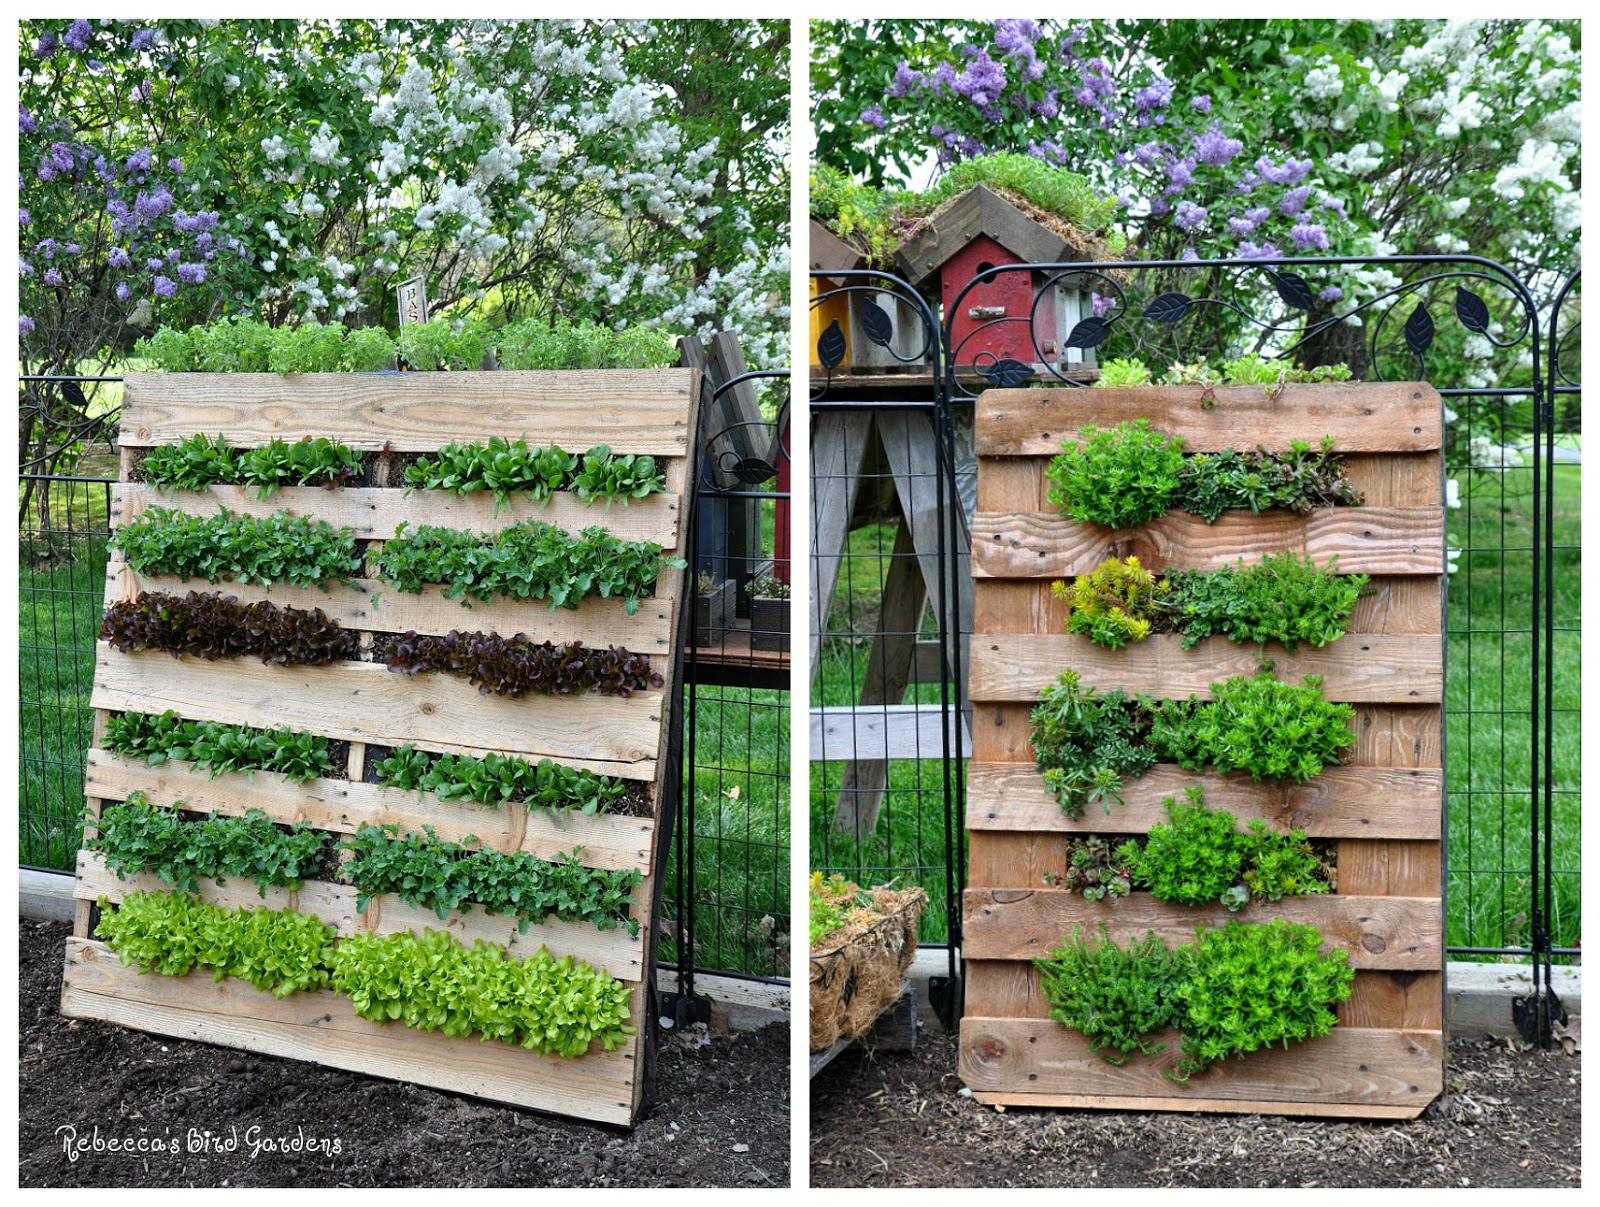 Rebecca S Bird Gardens Blog Diy Vertical Pallet Garden